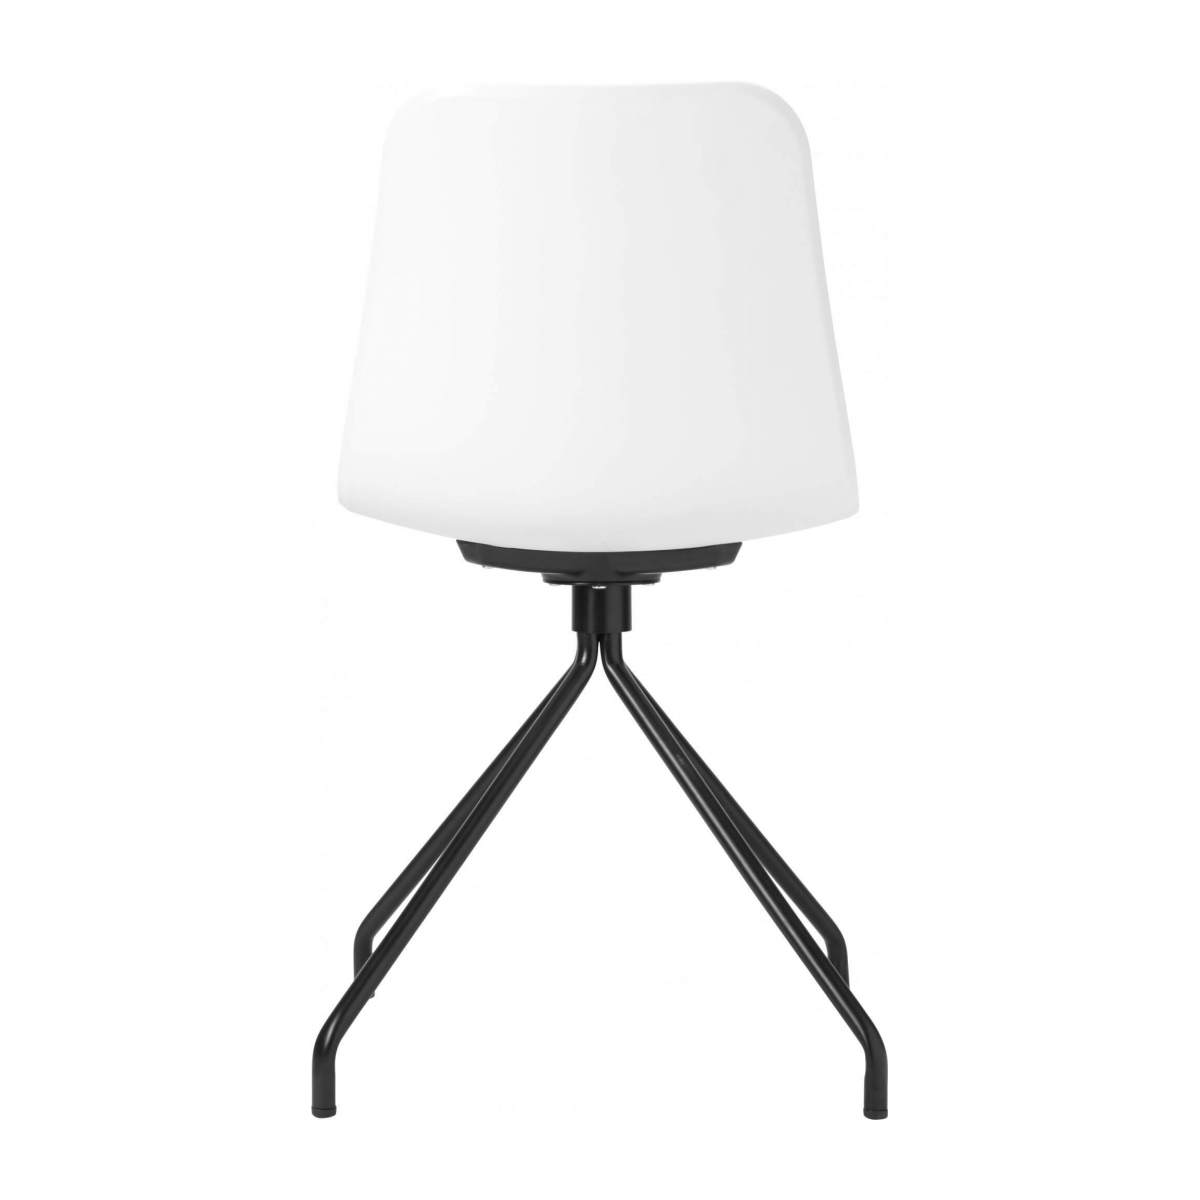 White chair in polypropylene and lacquered steel legs n°3